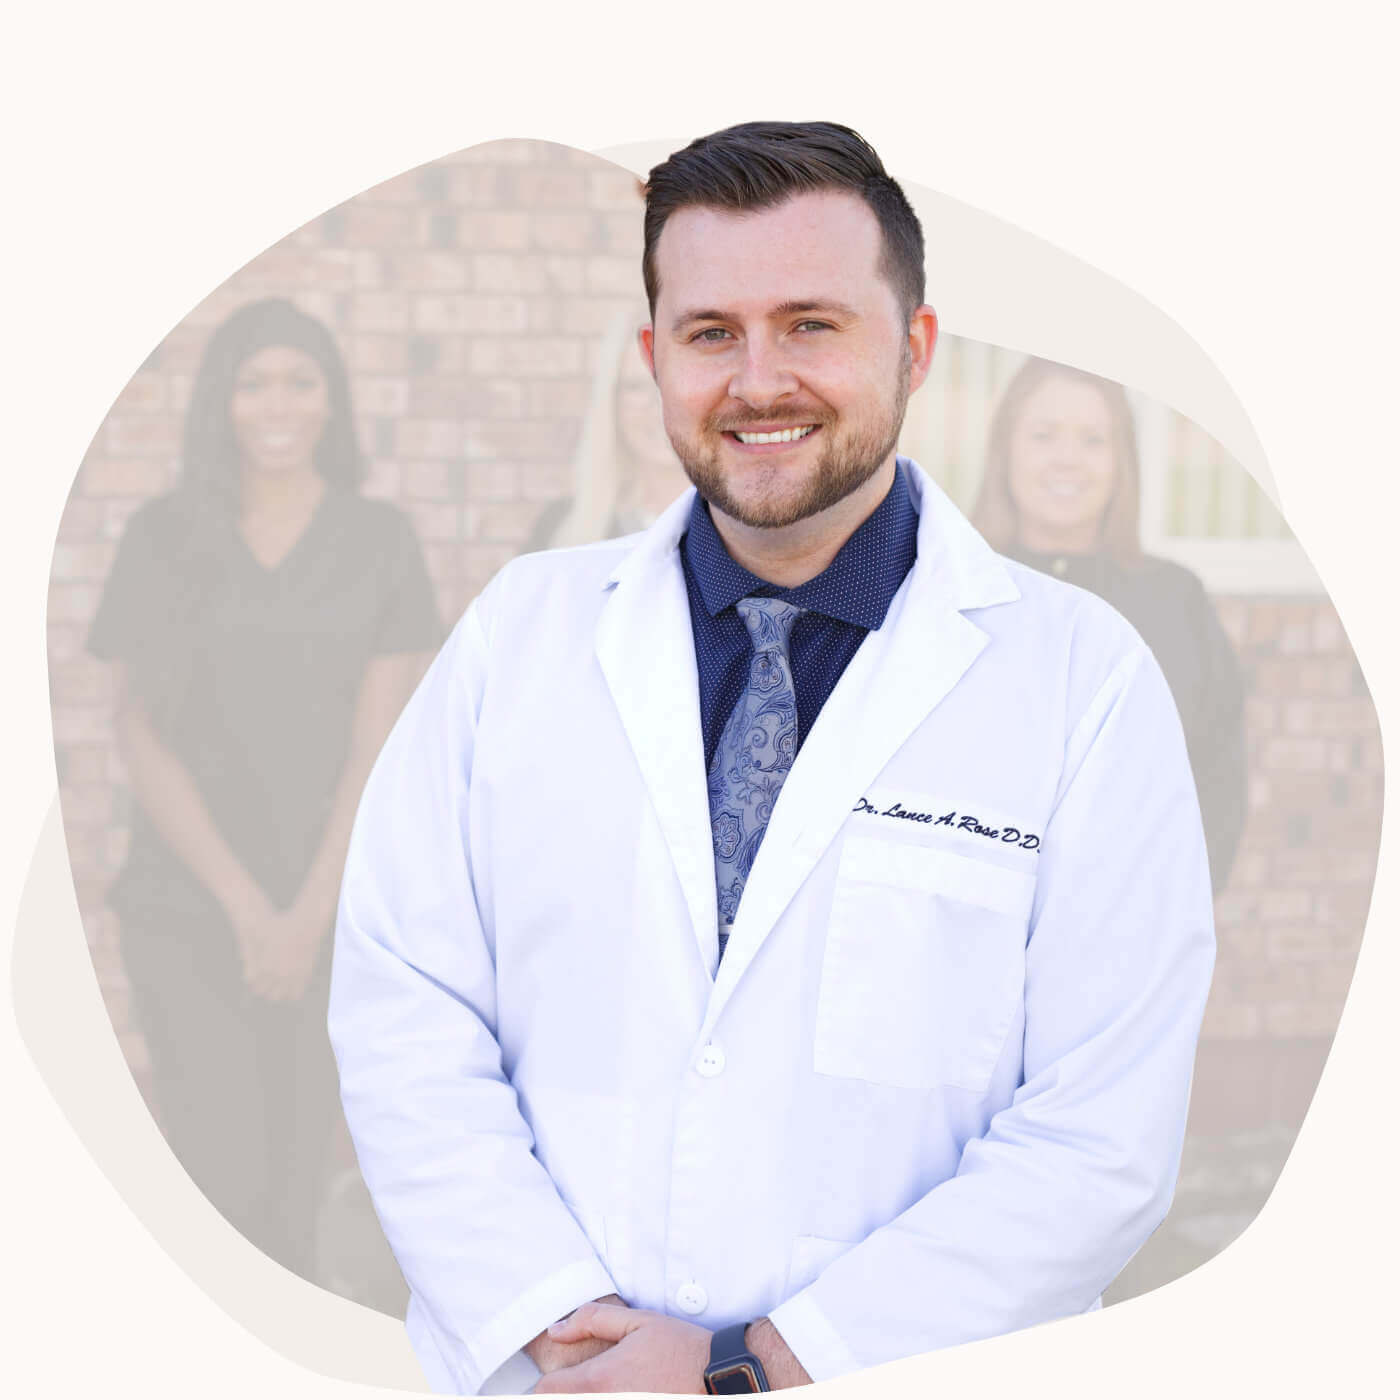 Dr. Lance A. Rose welcoming everyone to Town & Country Dentistry.